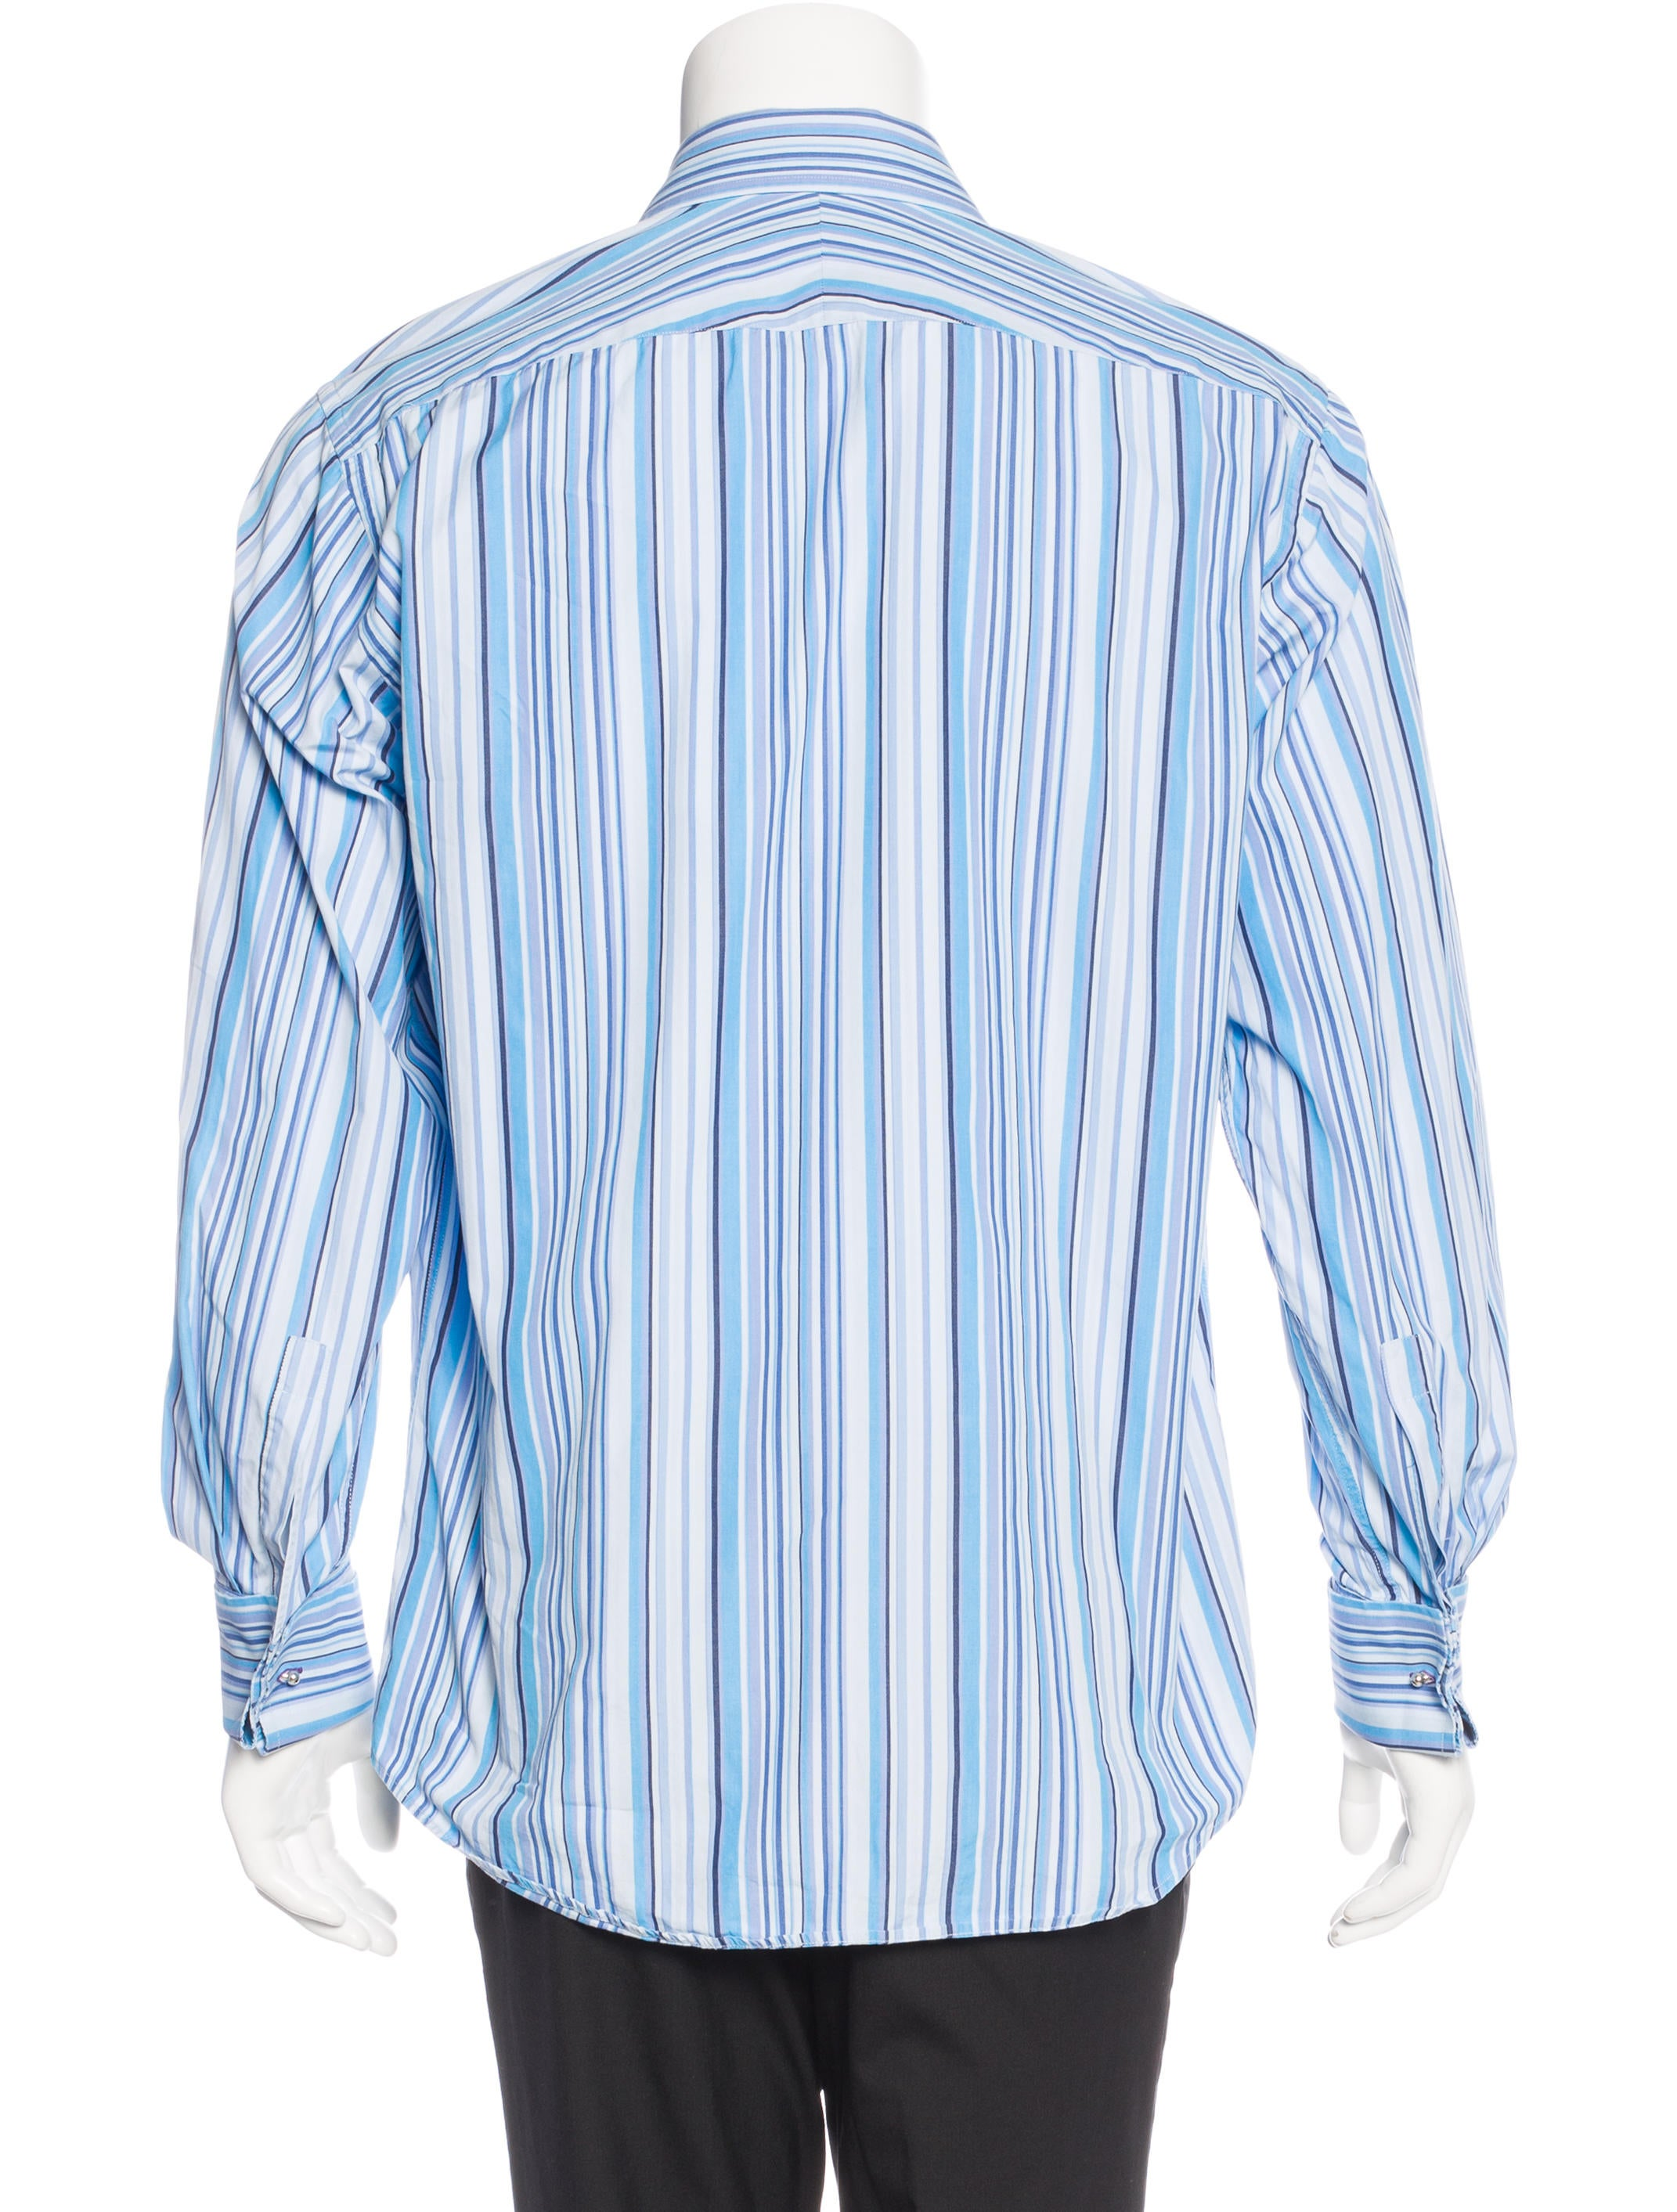 paul smith french cuff striped shirt clothing wps23708. Black Bedroom Furniture Sets. Home Design Ideas